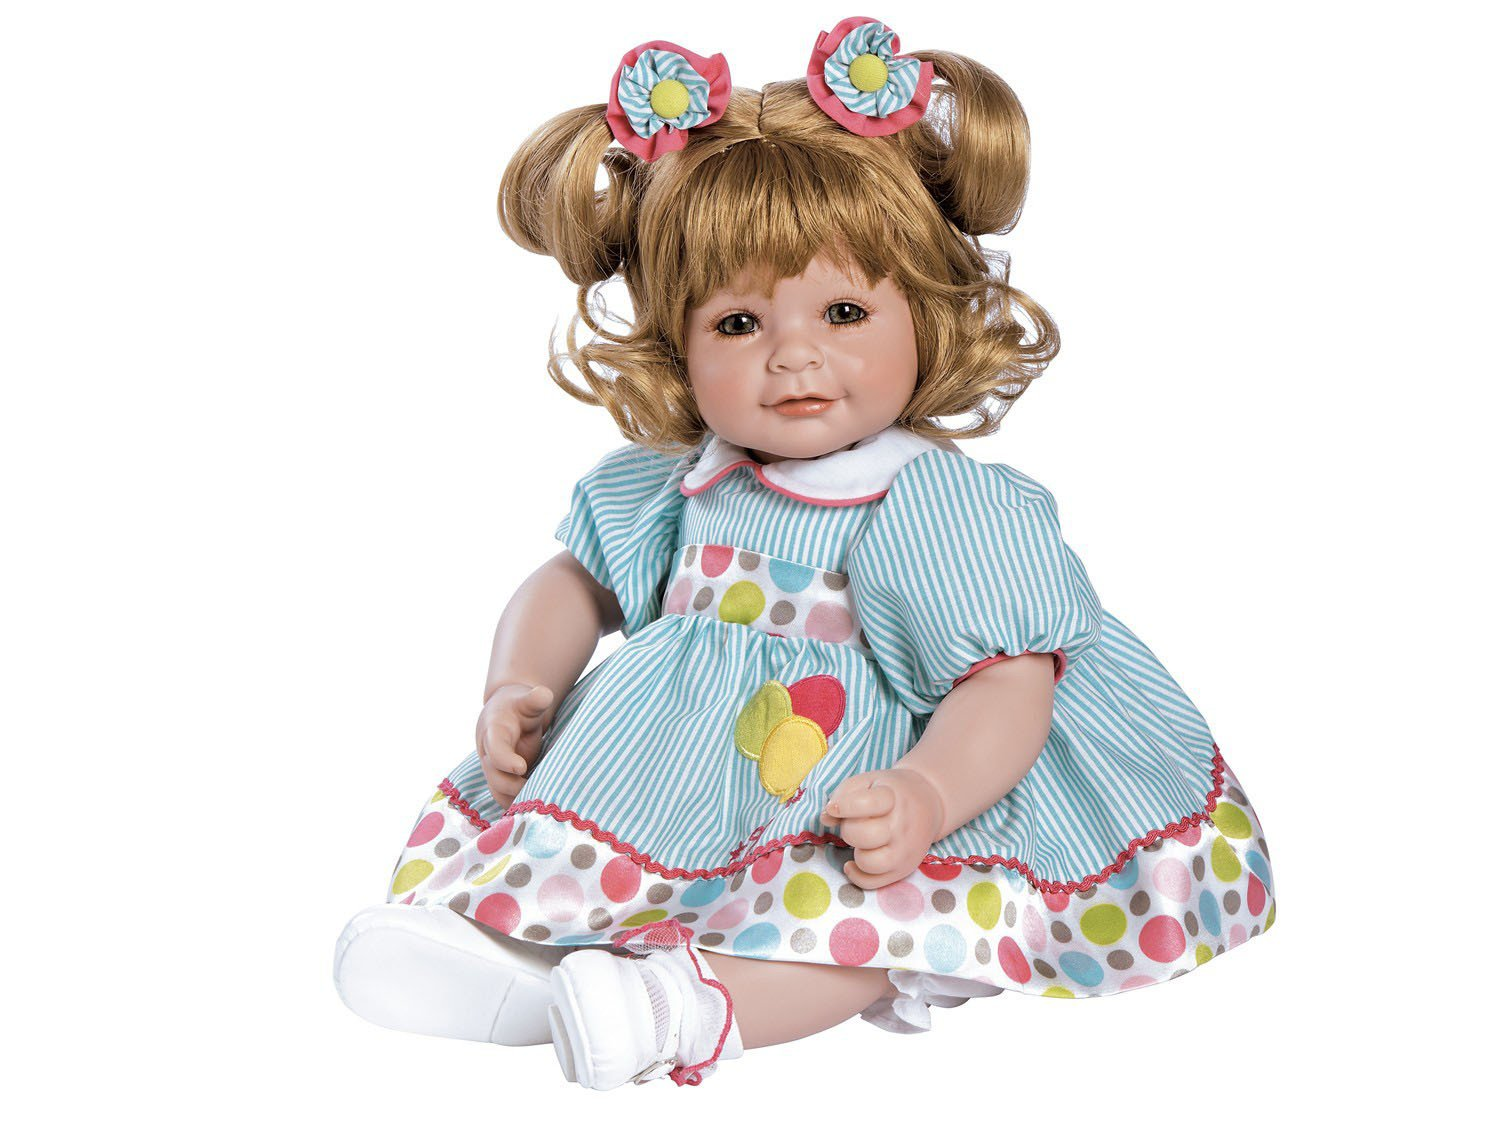 http://i.mlcdn.com.br/1500x1500/boneca-adora-up-up-and-away-girladora-doll-080207500.jpg